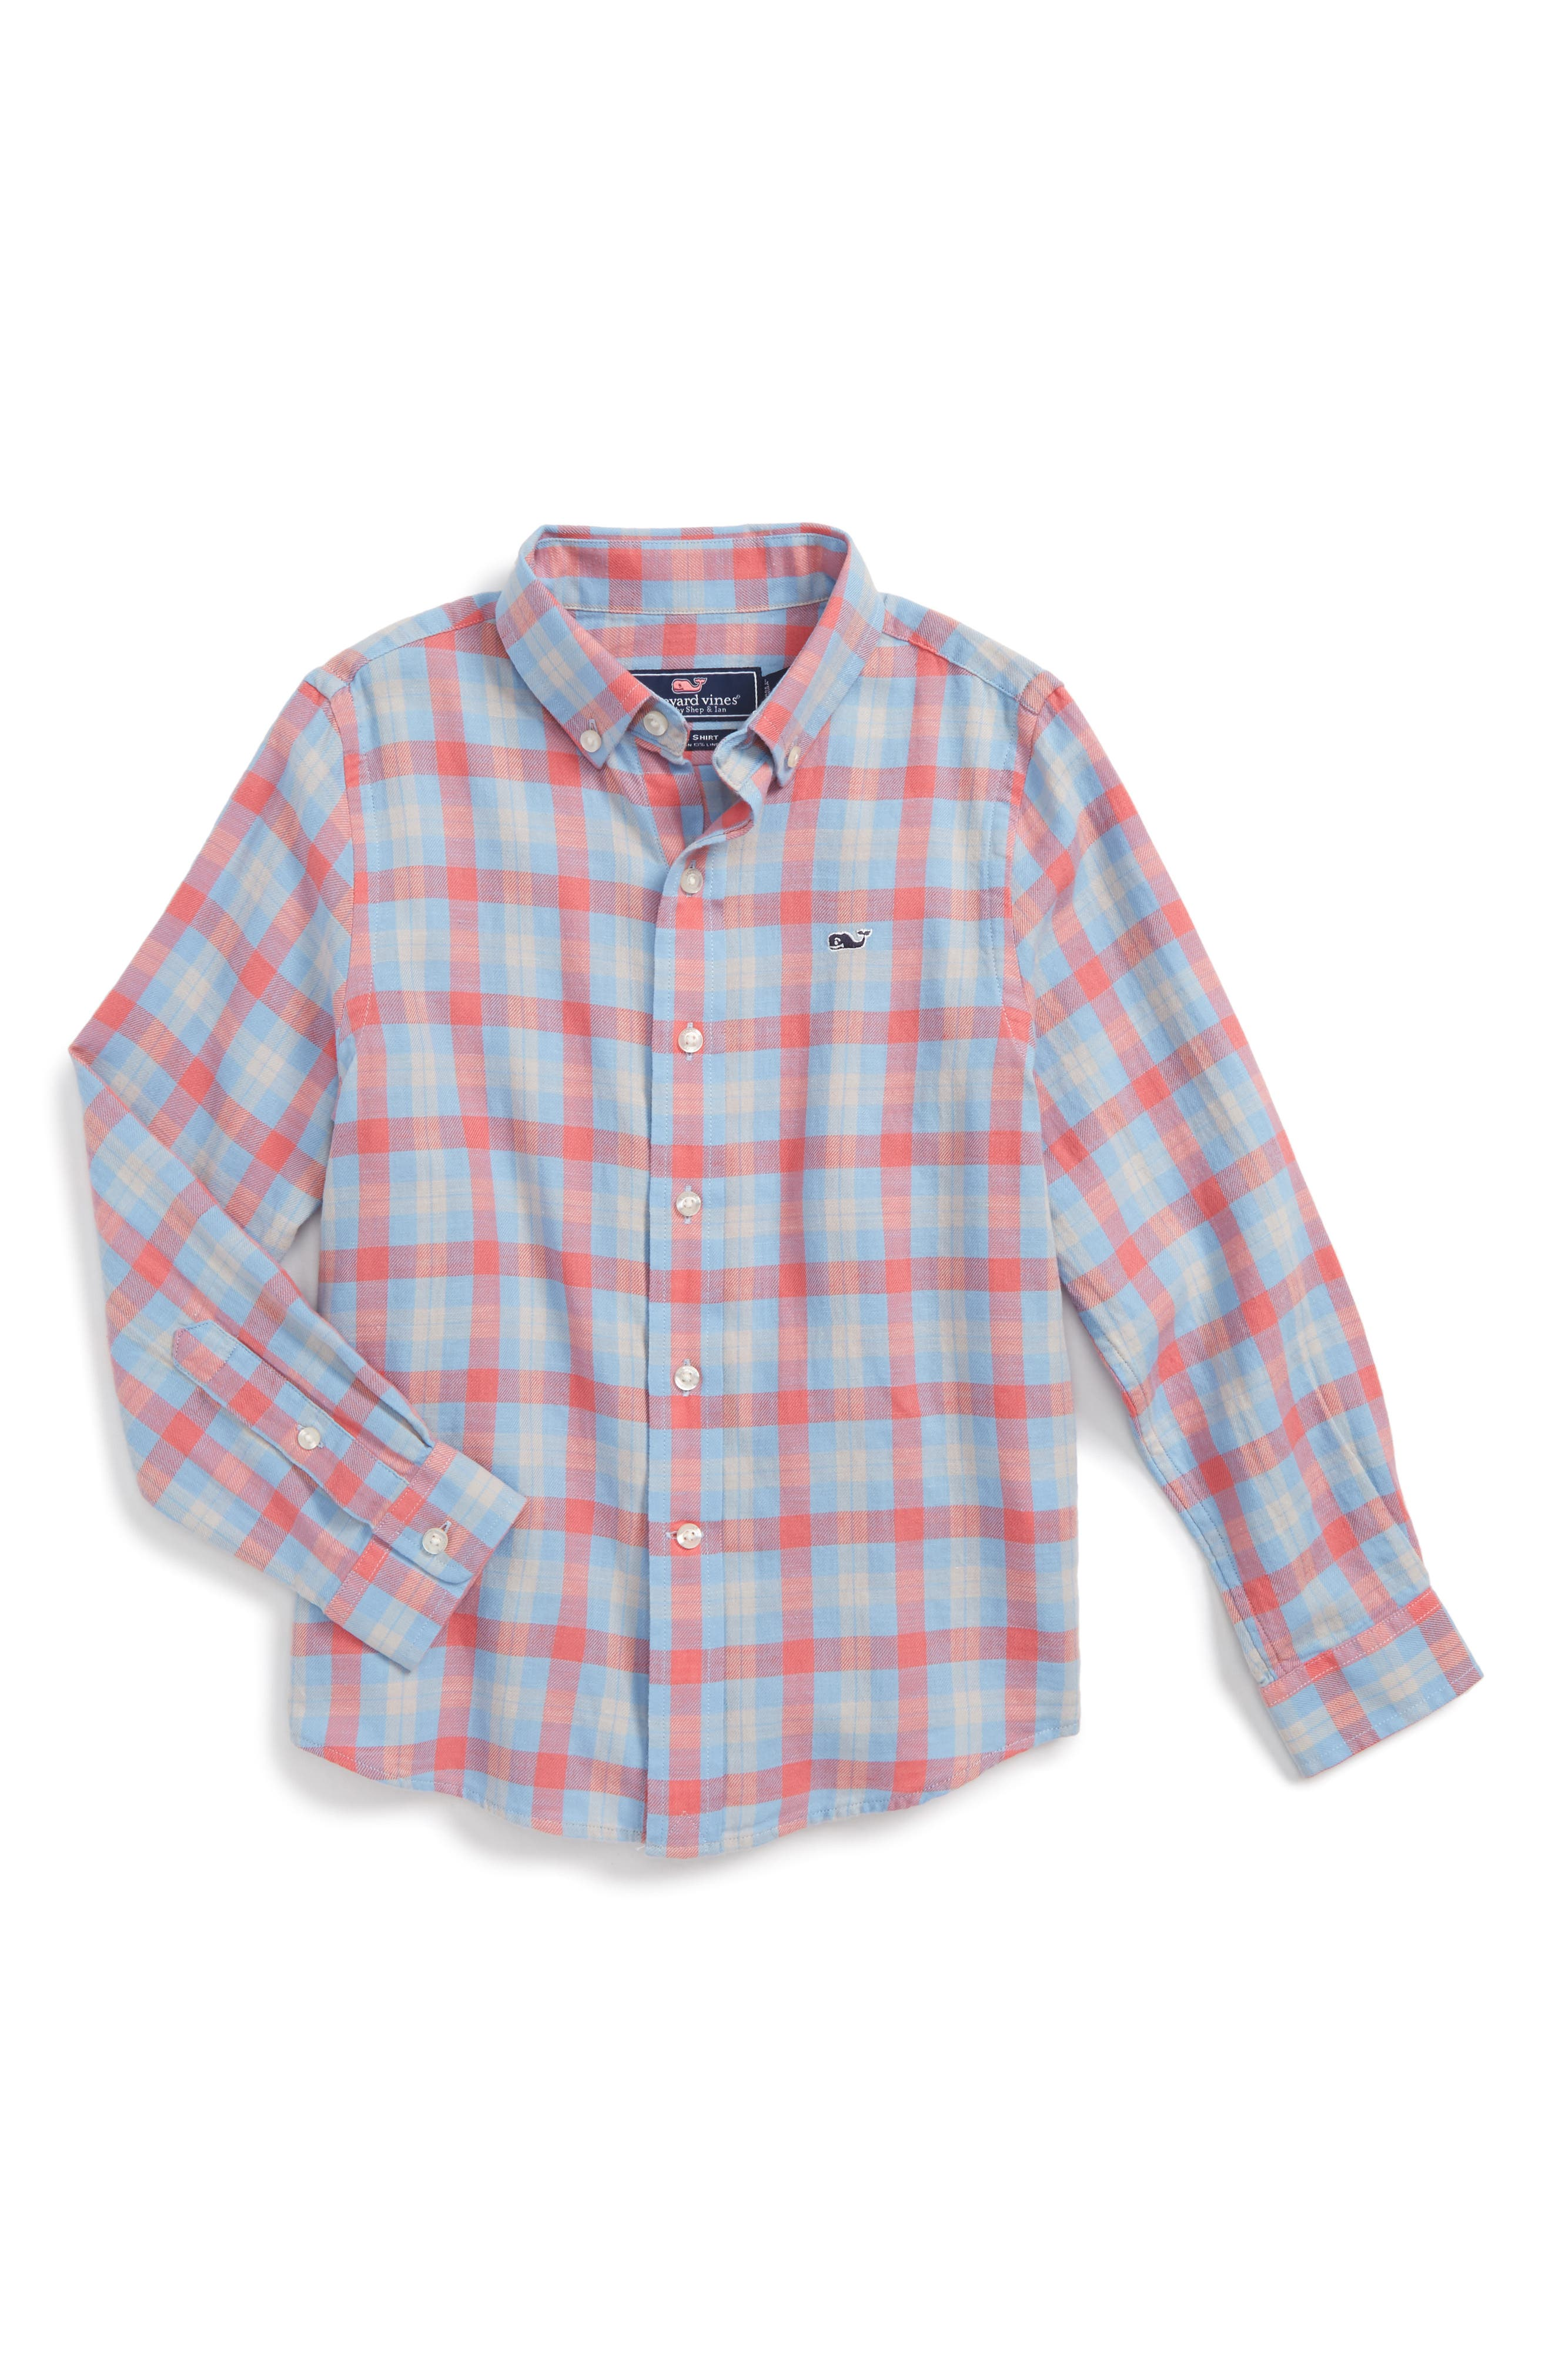 Vineyard Vines Hullman Point Plaid Cotton & Linen Shirt (Toddler Boys & Little Boys)